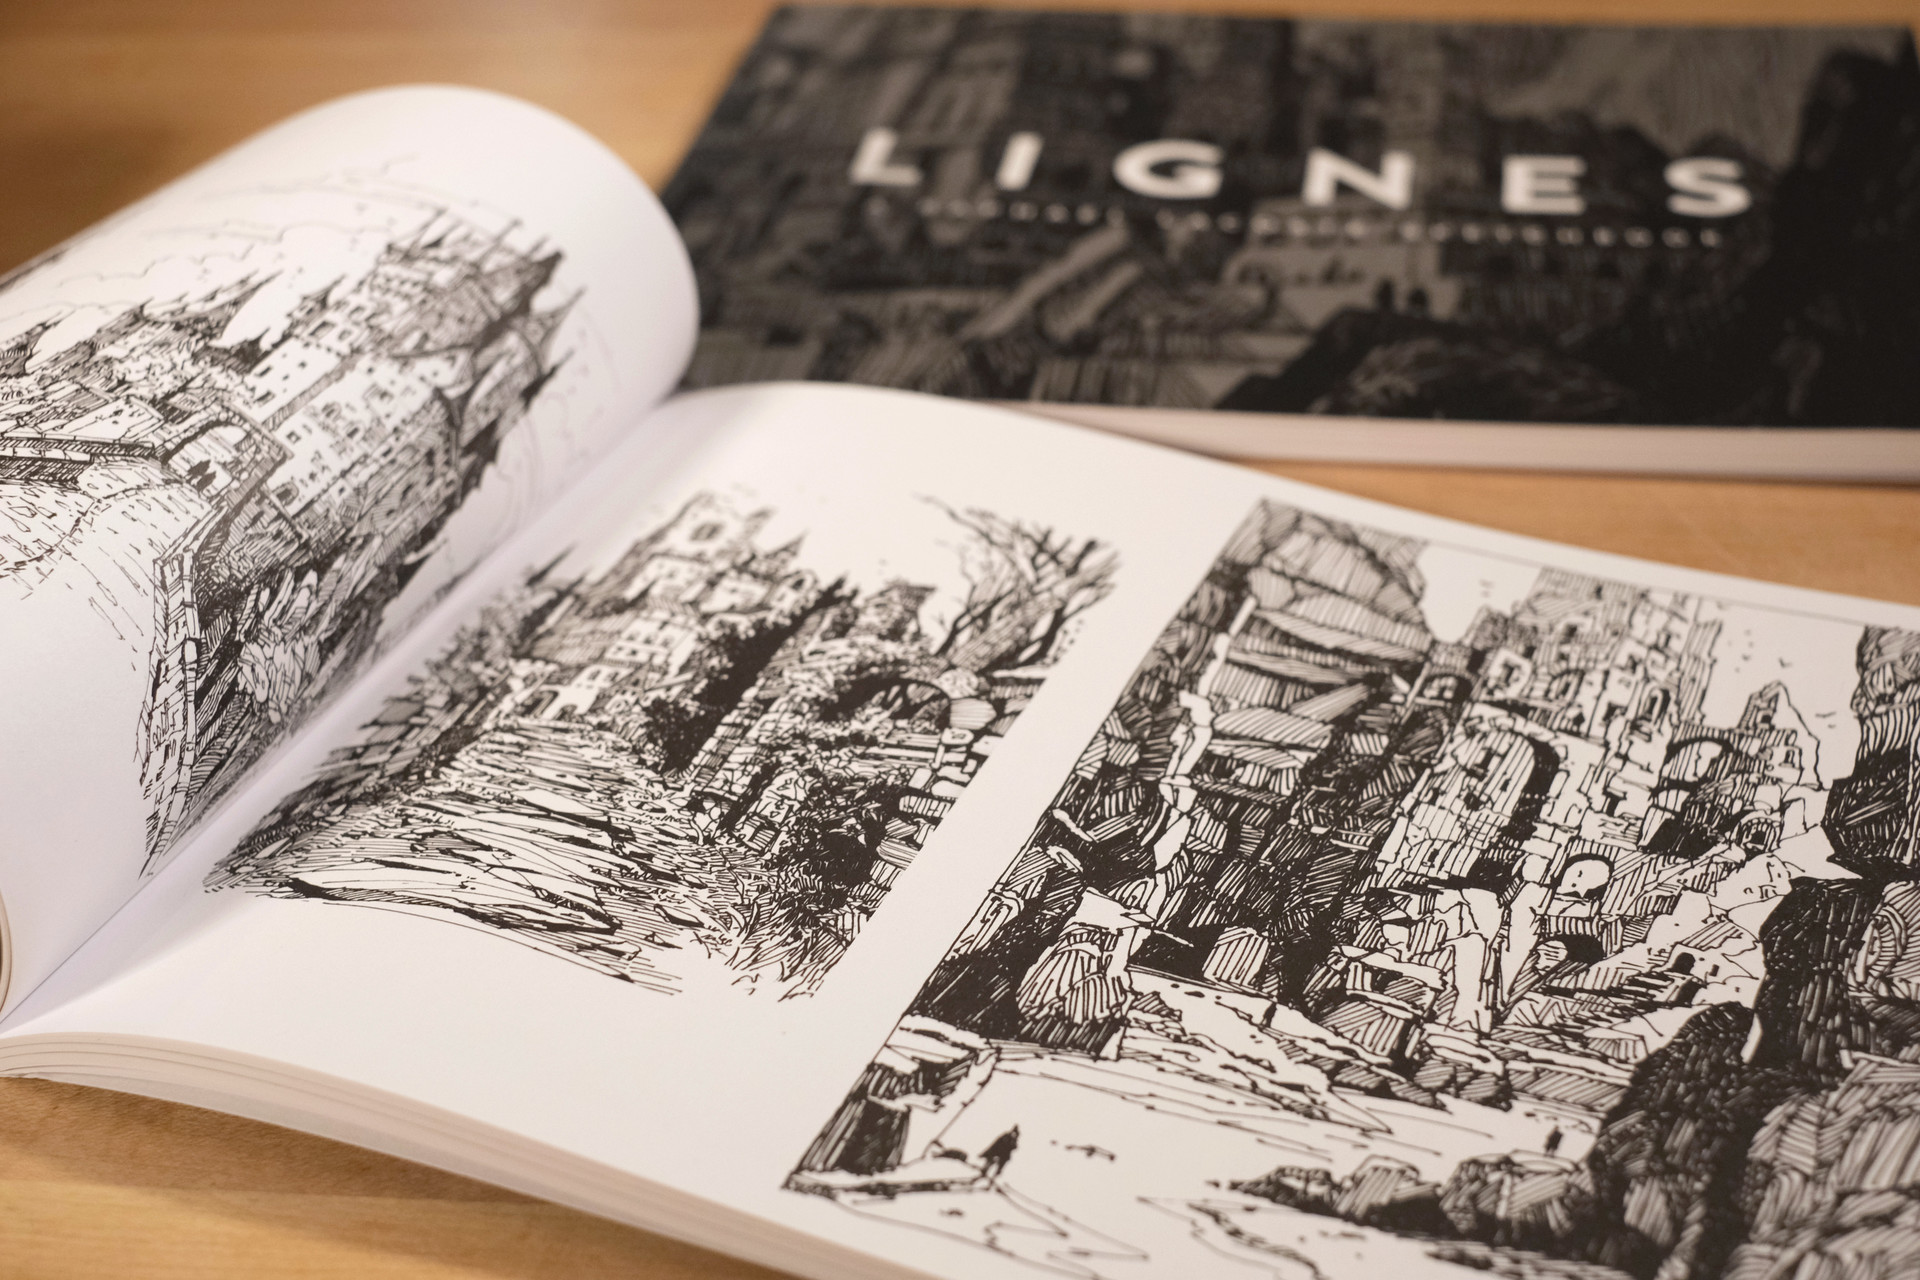 Raphael Lacoste Artbook Lignes limited Signed Edition